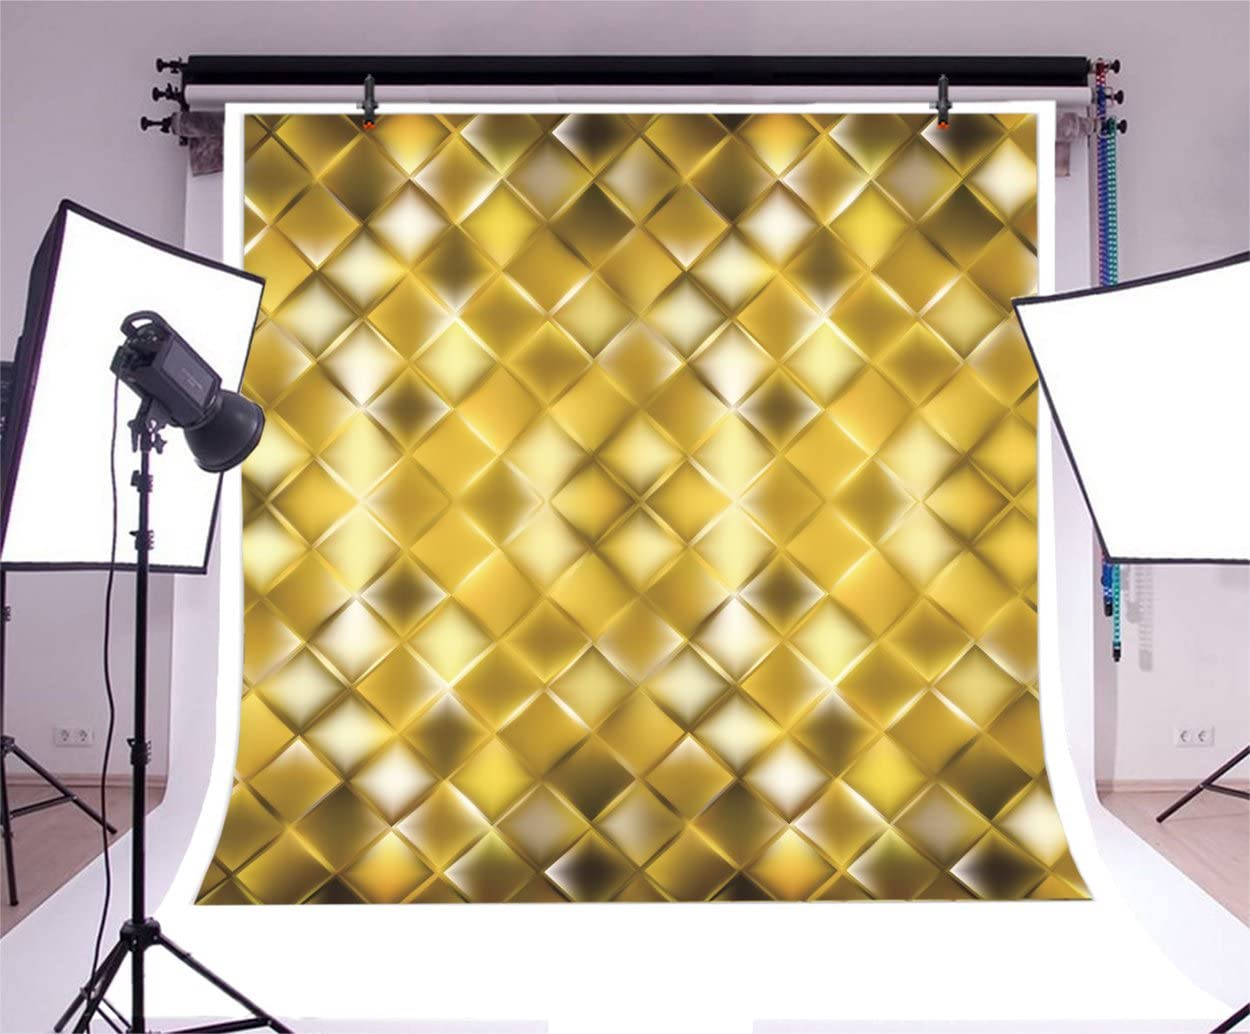 Diamond 8x10 FT Photo Backdrops,Colorful Gemstones with Rhombus Shapes on a Dark Background Simplistic Pattern Background for Baby Shower Birthday Wedding Bridal Shower Party Decoration Photo Studio